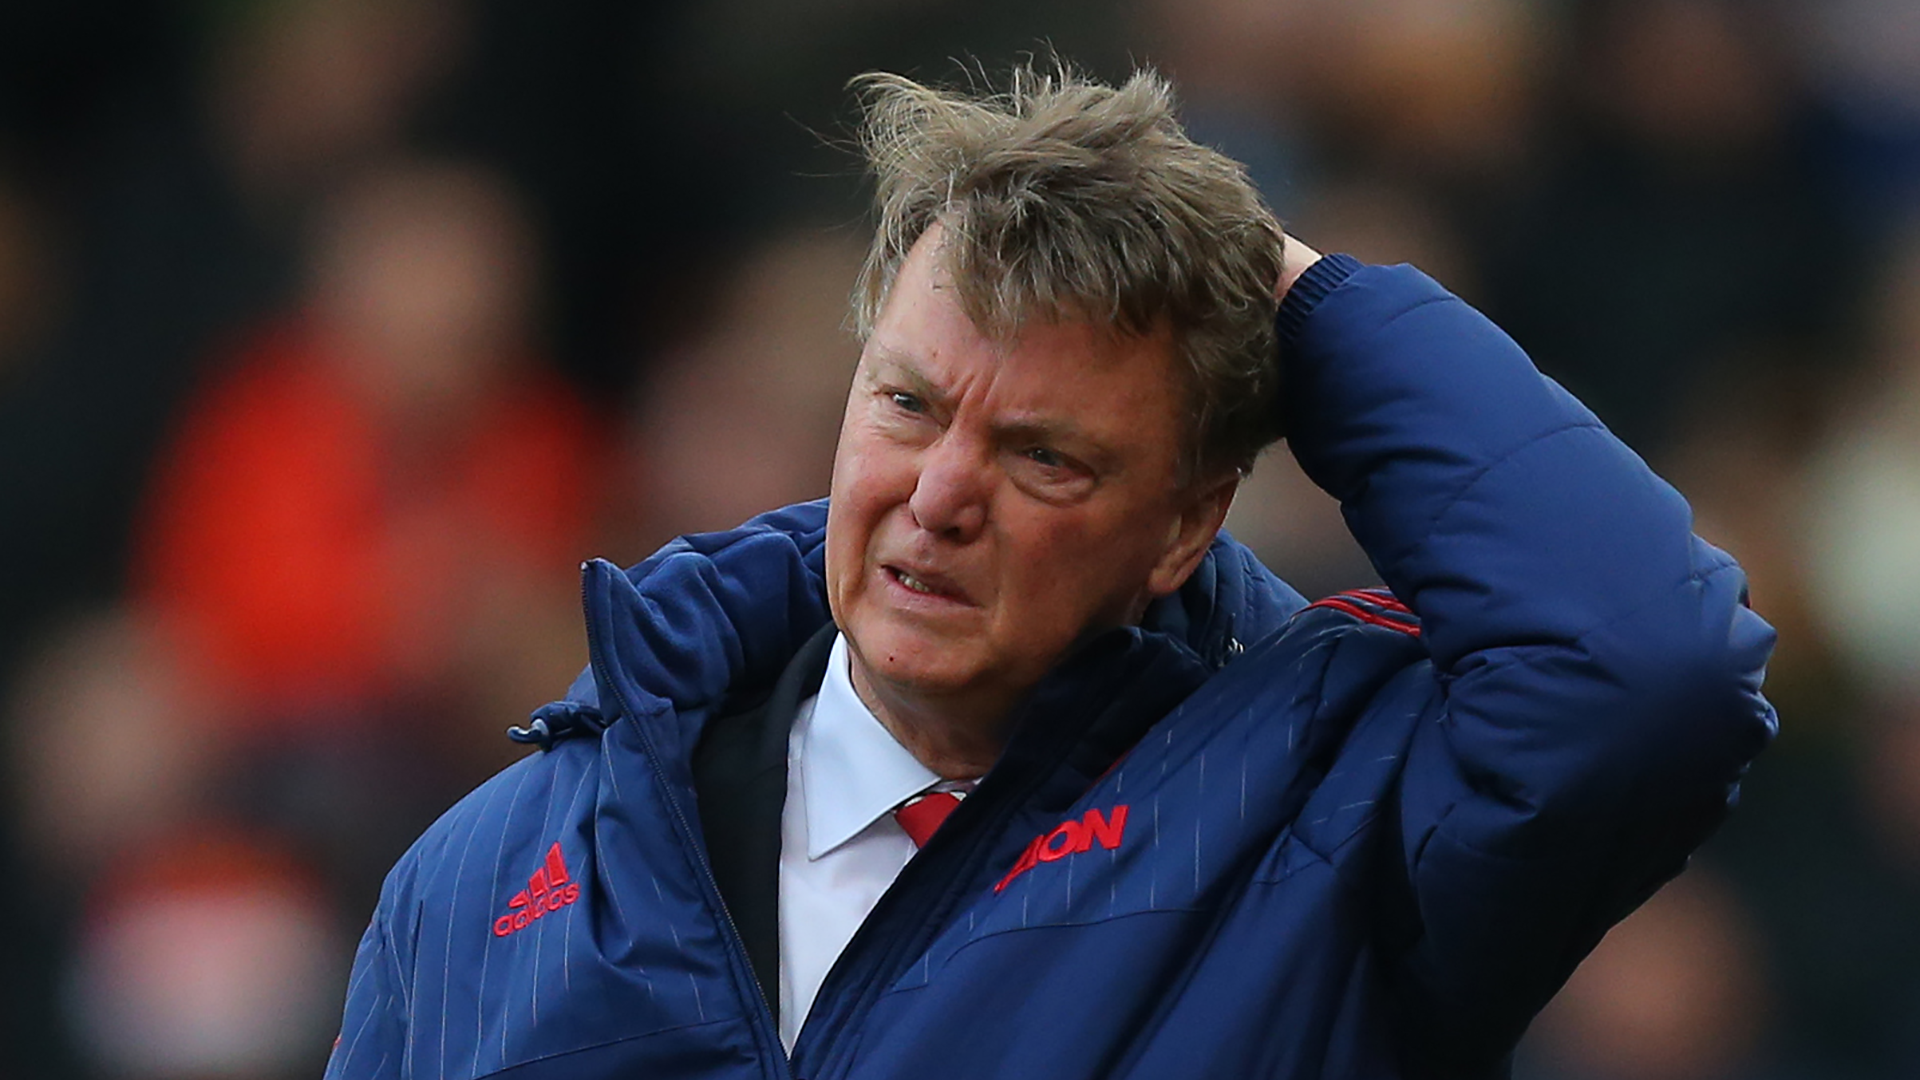 Louis van Gaal Manchester United Premier League